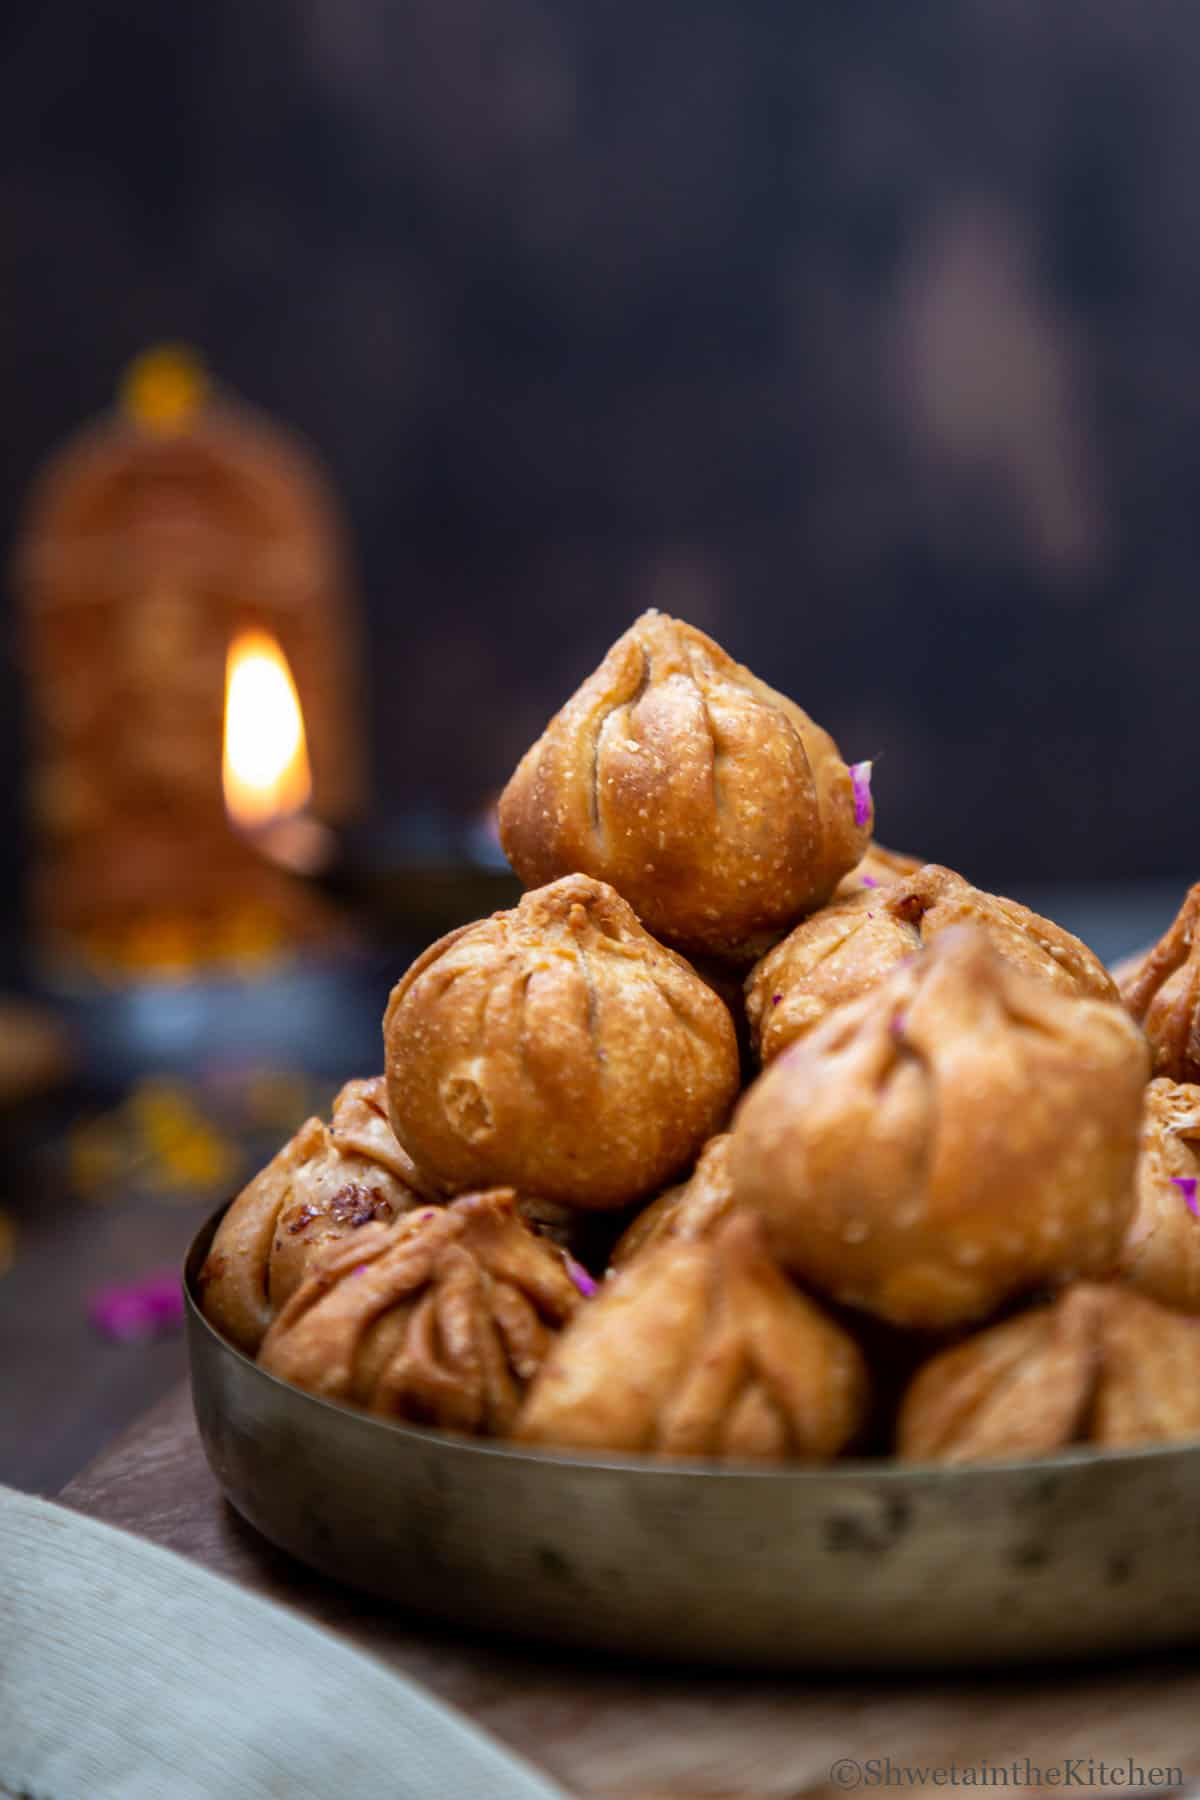 Fried Modak tower in focus with Lord Ganesha and light in background